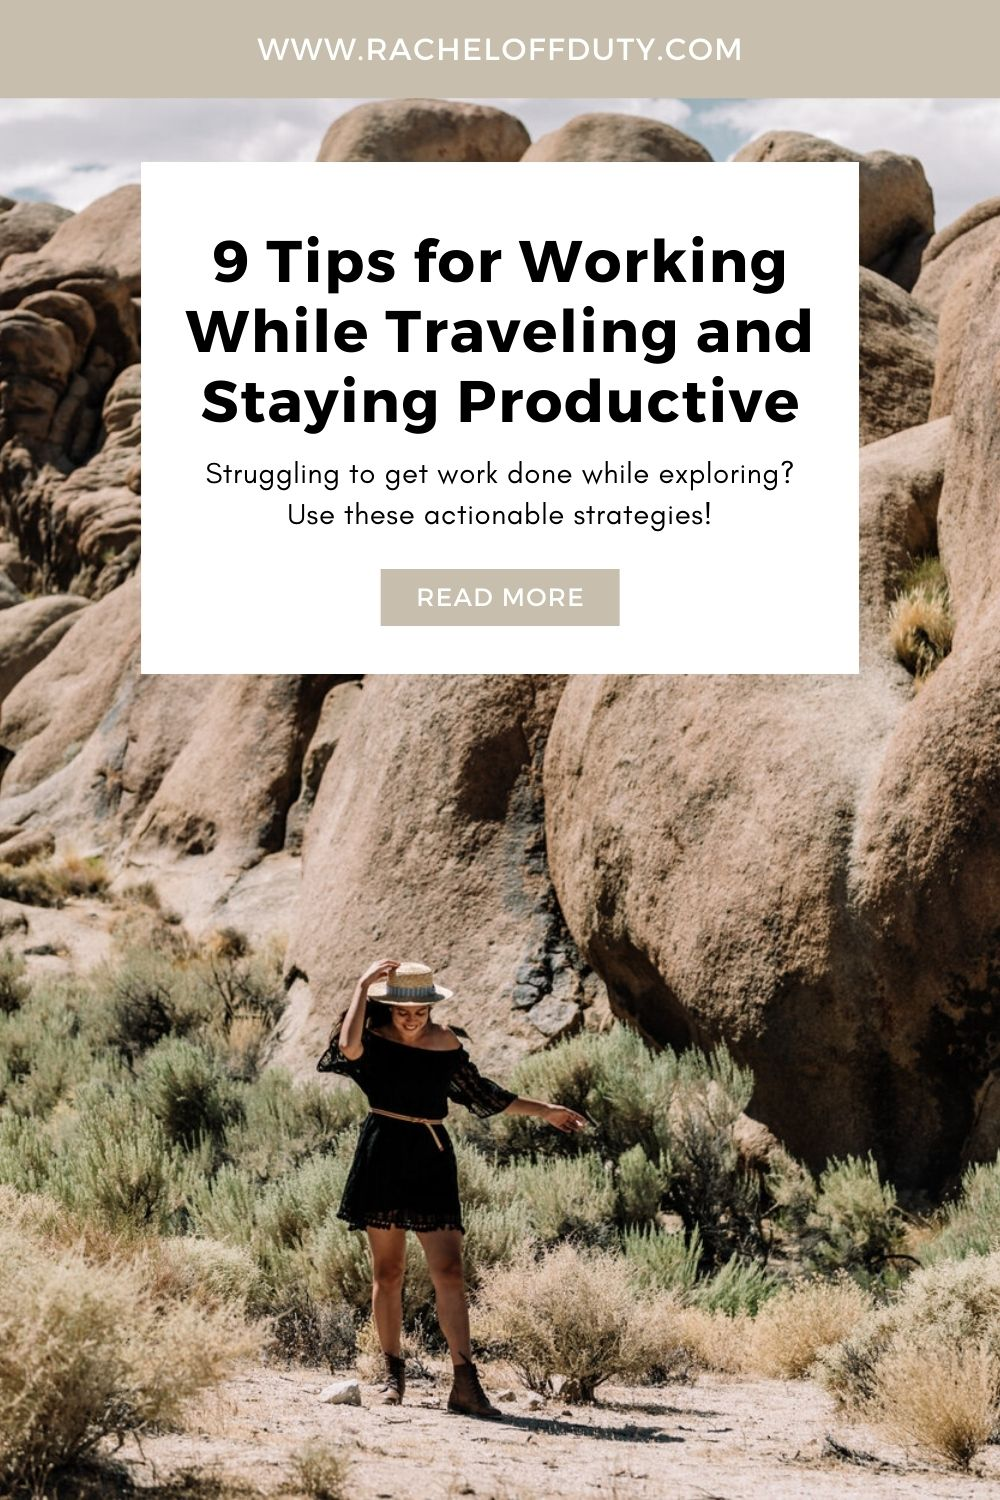 Tips for Working While Traveling and Staying Productive - Rachel Off Duty